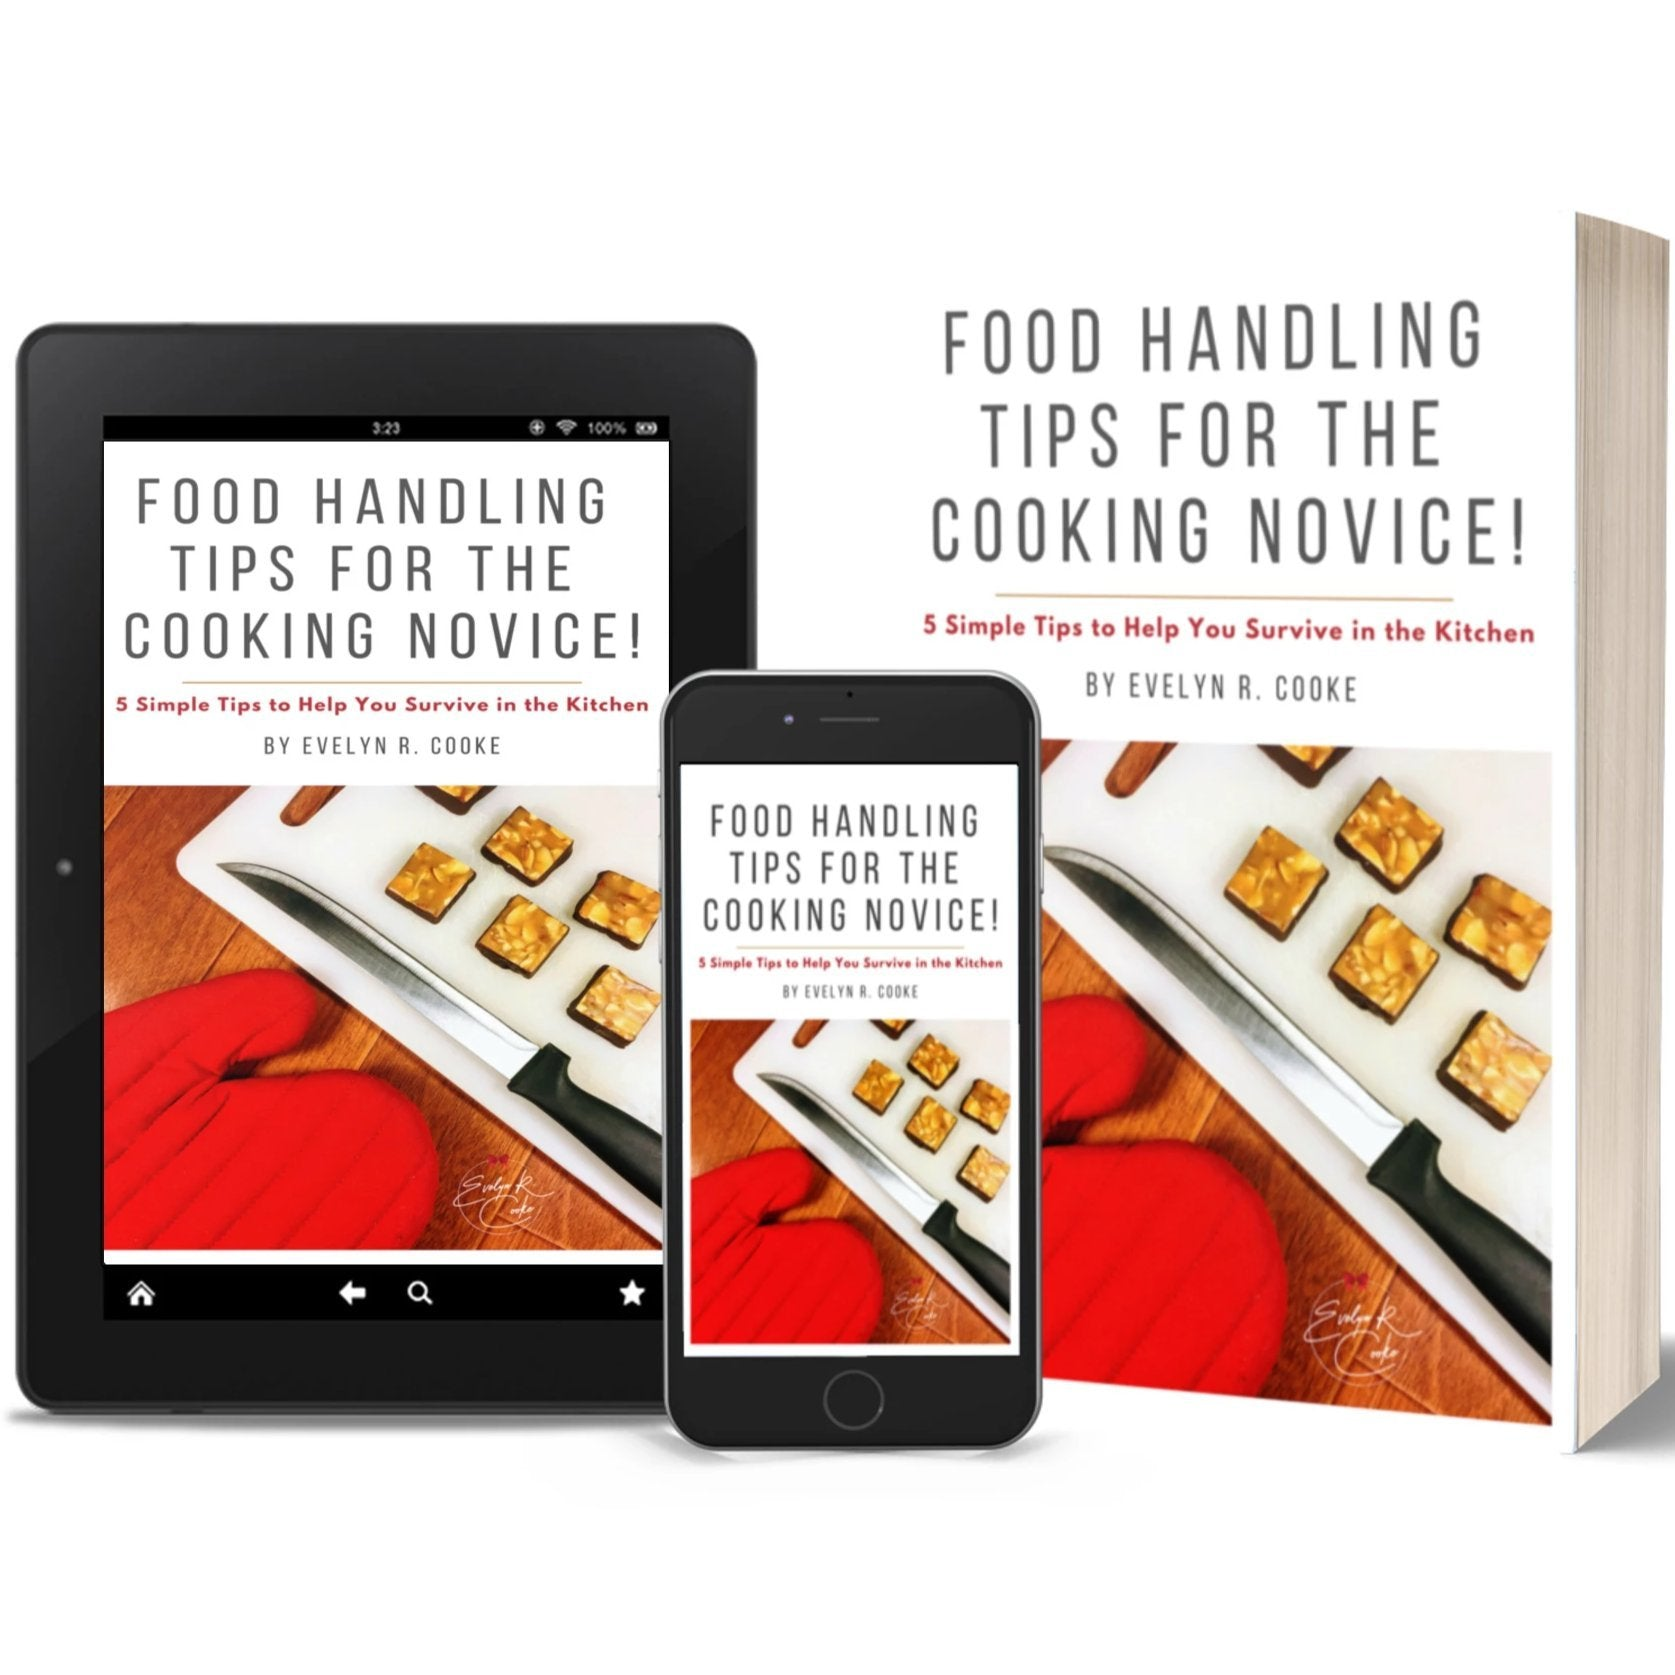 eBook: Food Handling Tips for the Cooking Novice Evelyn R. Cooke - The #EvCooks Store